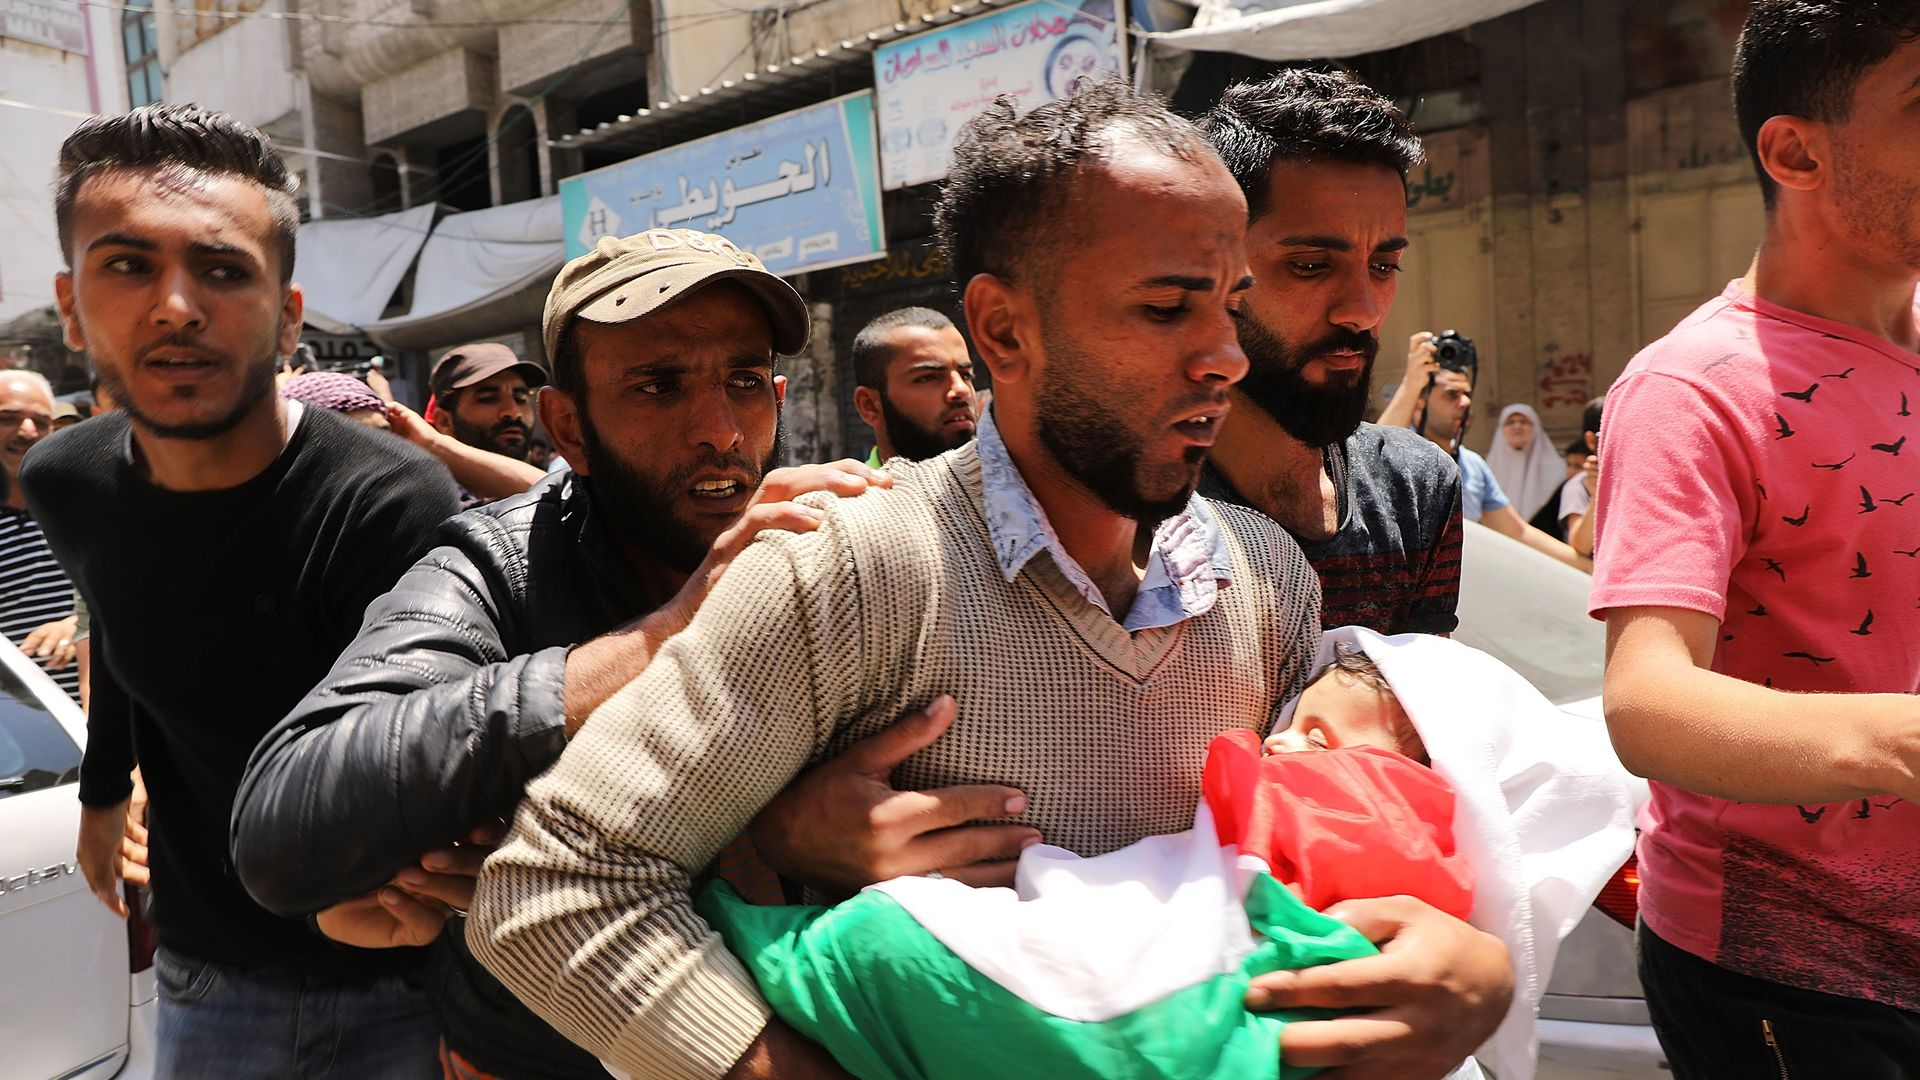 Palestinians holding funerals